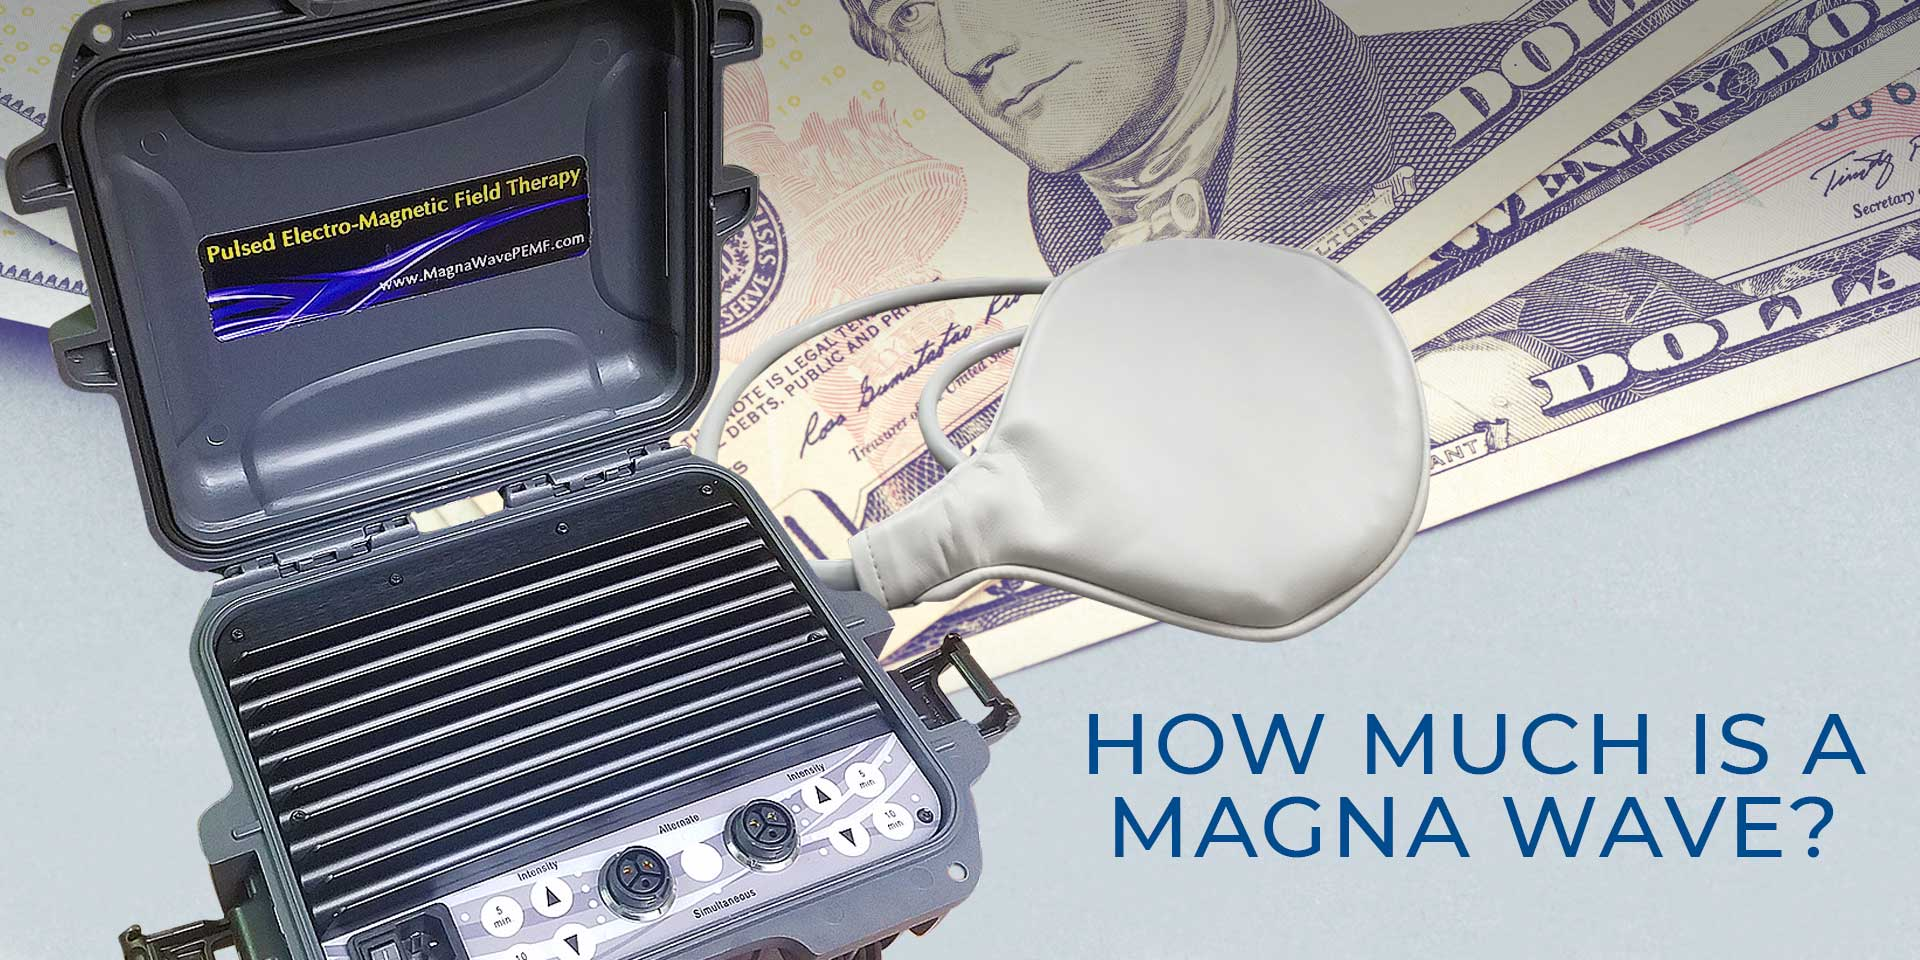 How Much is a Magna Wave?